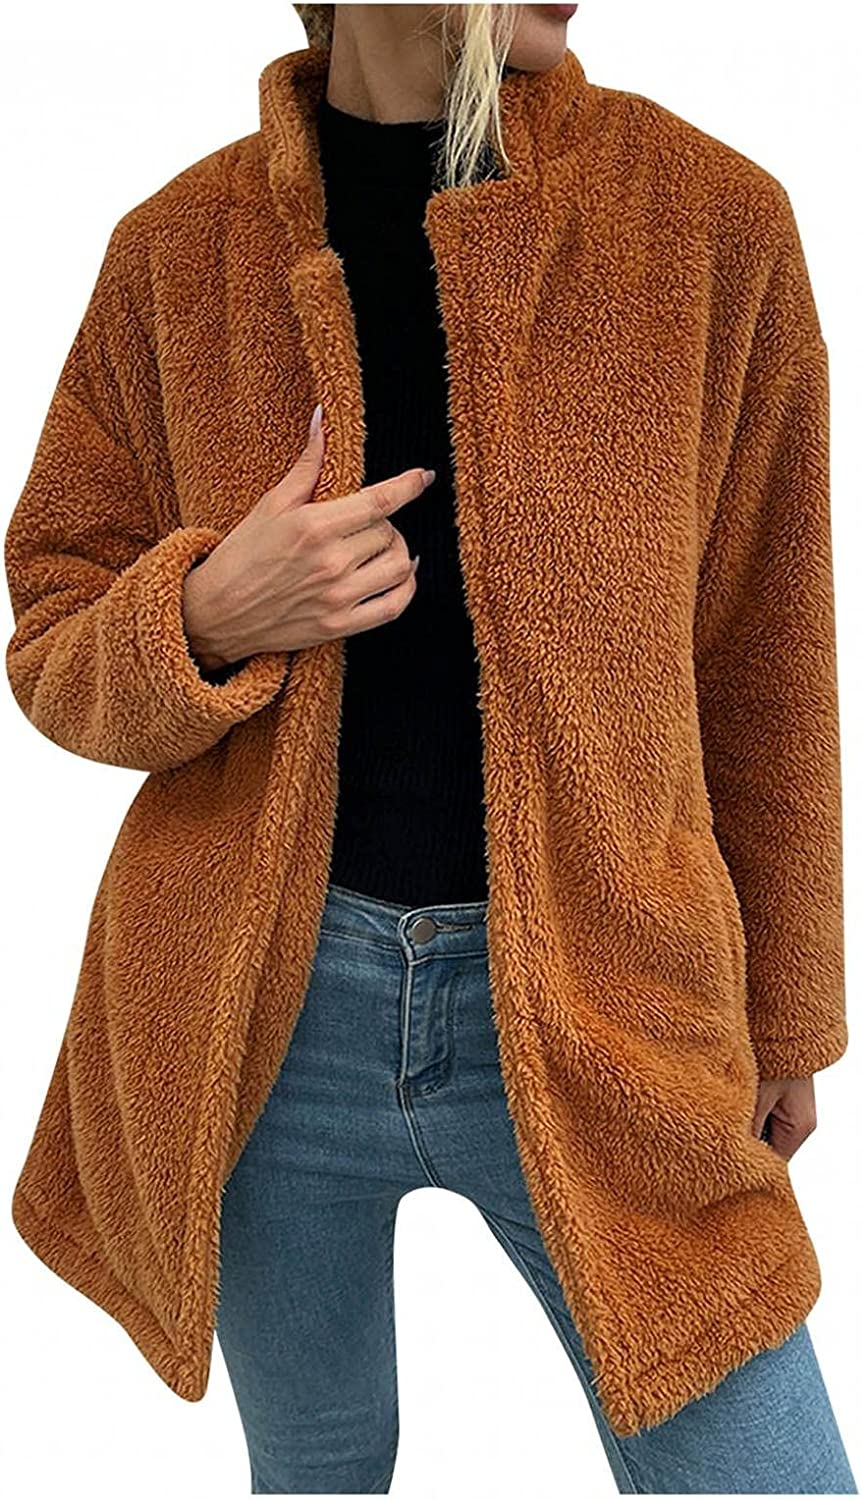 Special price for a limited time PHSHY Women's Faux Max 47% OFF Shearling Shaggy Oversized O Warm Winter Coat